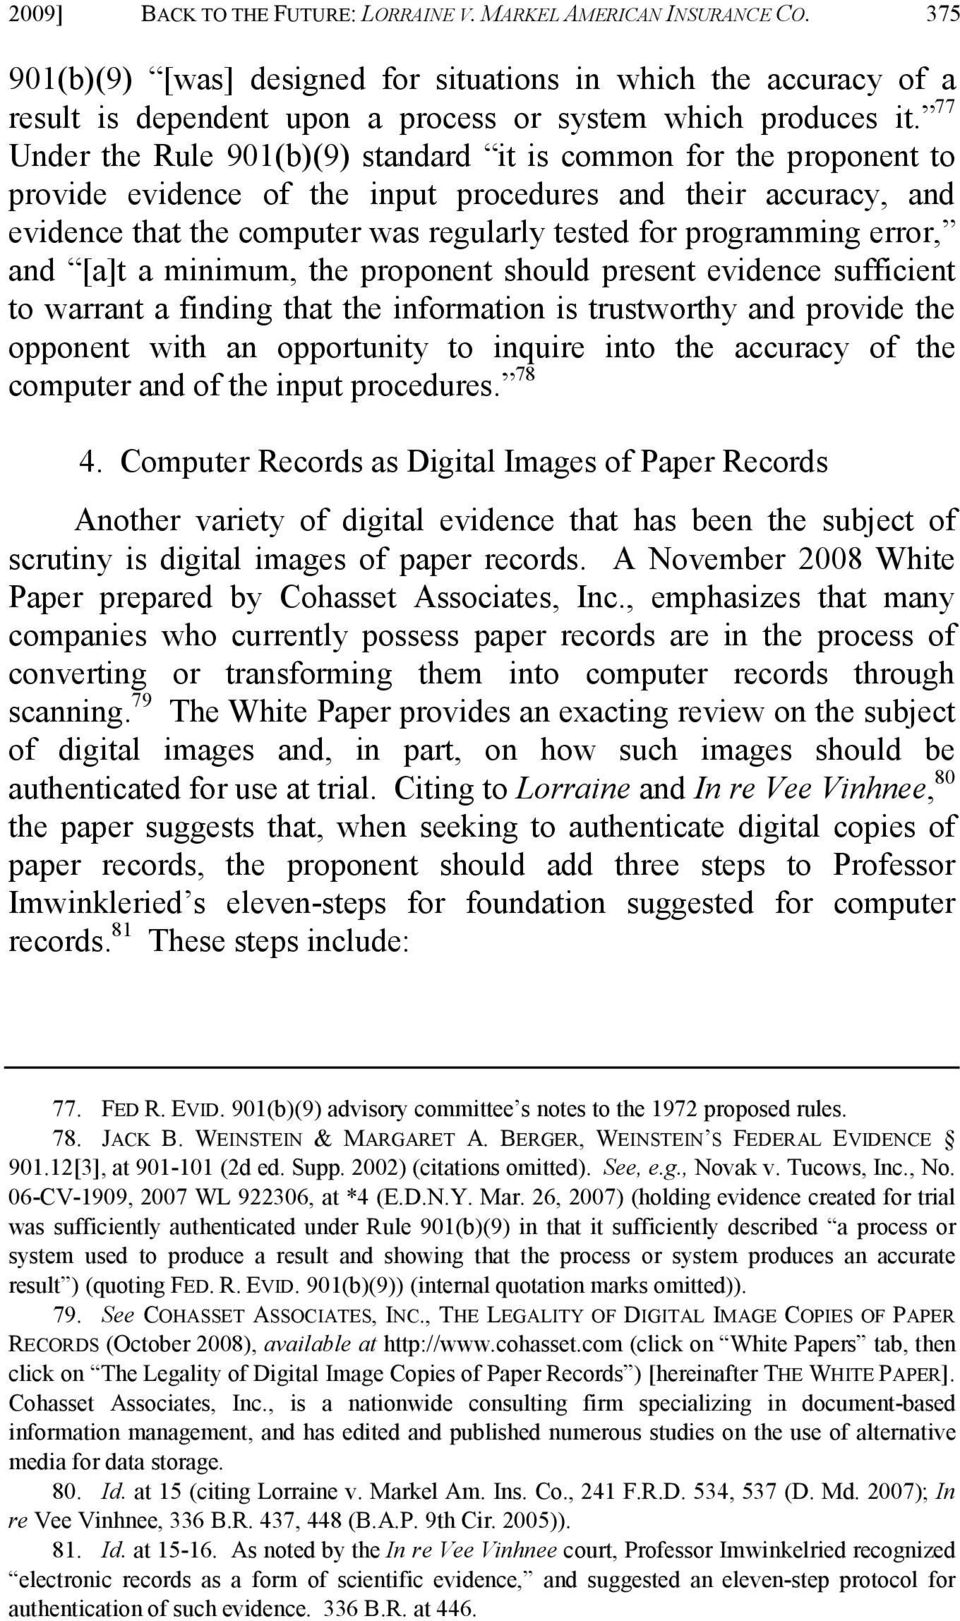 77 Under the Rule 901(b)(9) standard it is common for the proponent to provide evidence of the input procedures and their accuracy, and evidence that the computer was regularly tested for programming